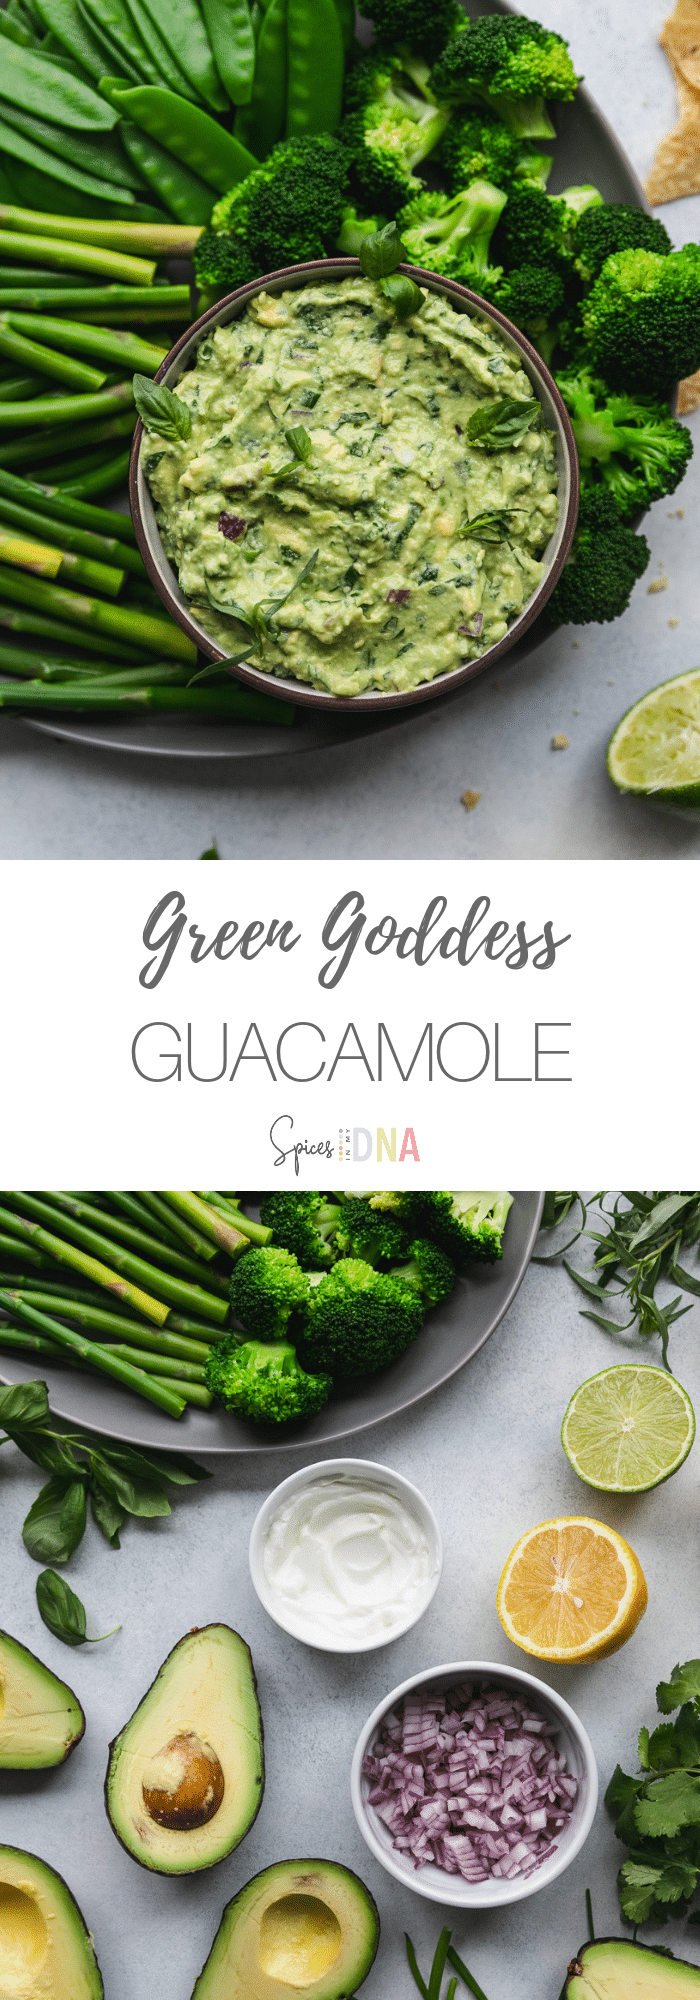 This Green Goddess Guacamole is perfect for spring! It's filled with lots of fresh herbs - cilantro, chives, tarragon, and basil! I love serving it with green vegetables, and chips of course. It's such a fun take on classic guac, and it's super festive for St. Patty's Day too! #guacamole #greengoddess #springrecipe #appetizer